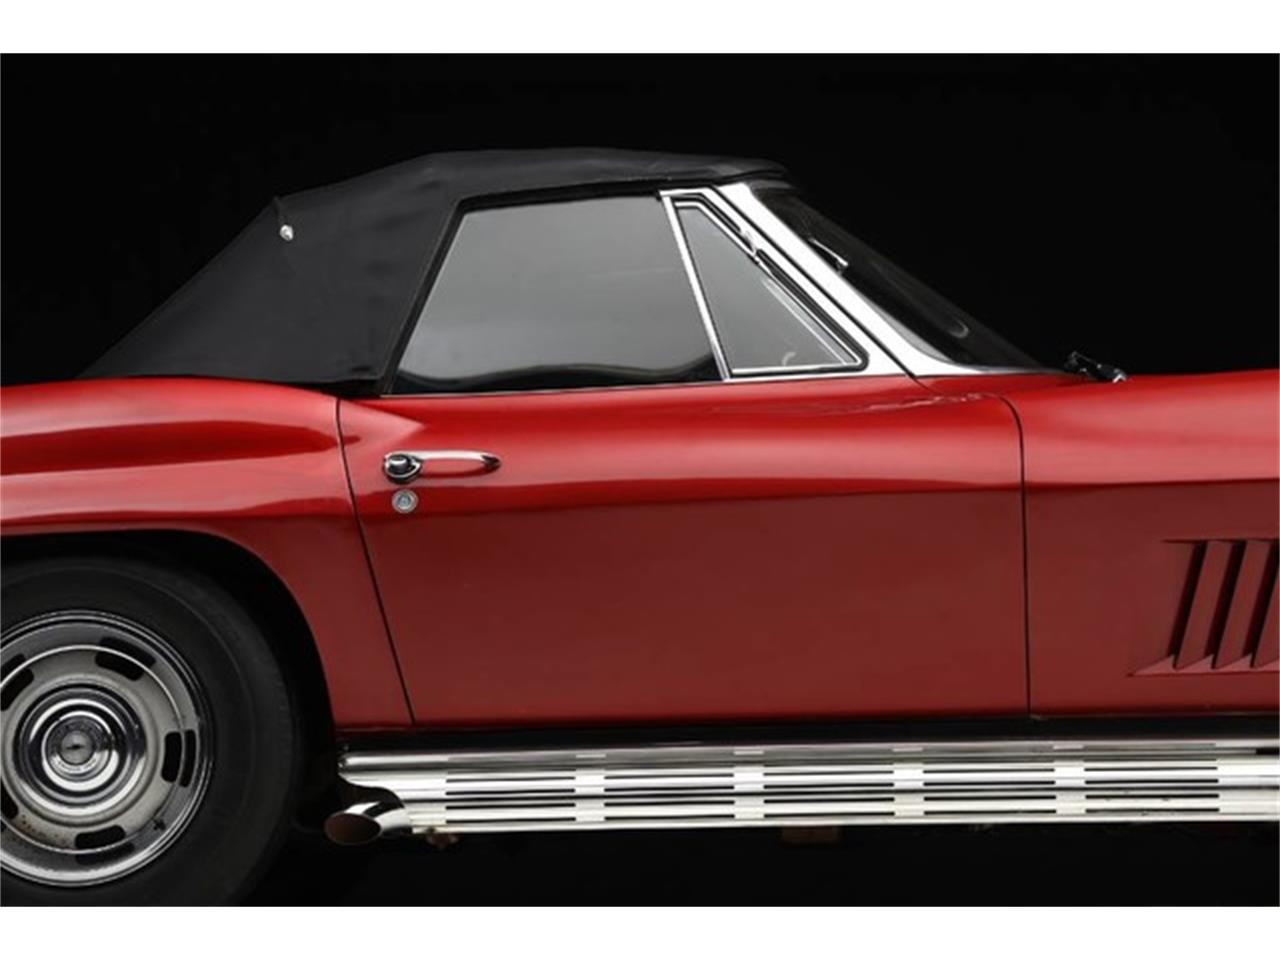 Large Picture of Classic '67 Corvette located in Clifton Park New York Auction Vehicle Offered by Prestige Motor Car Co. - Q1X7